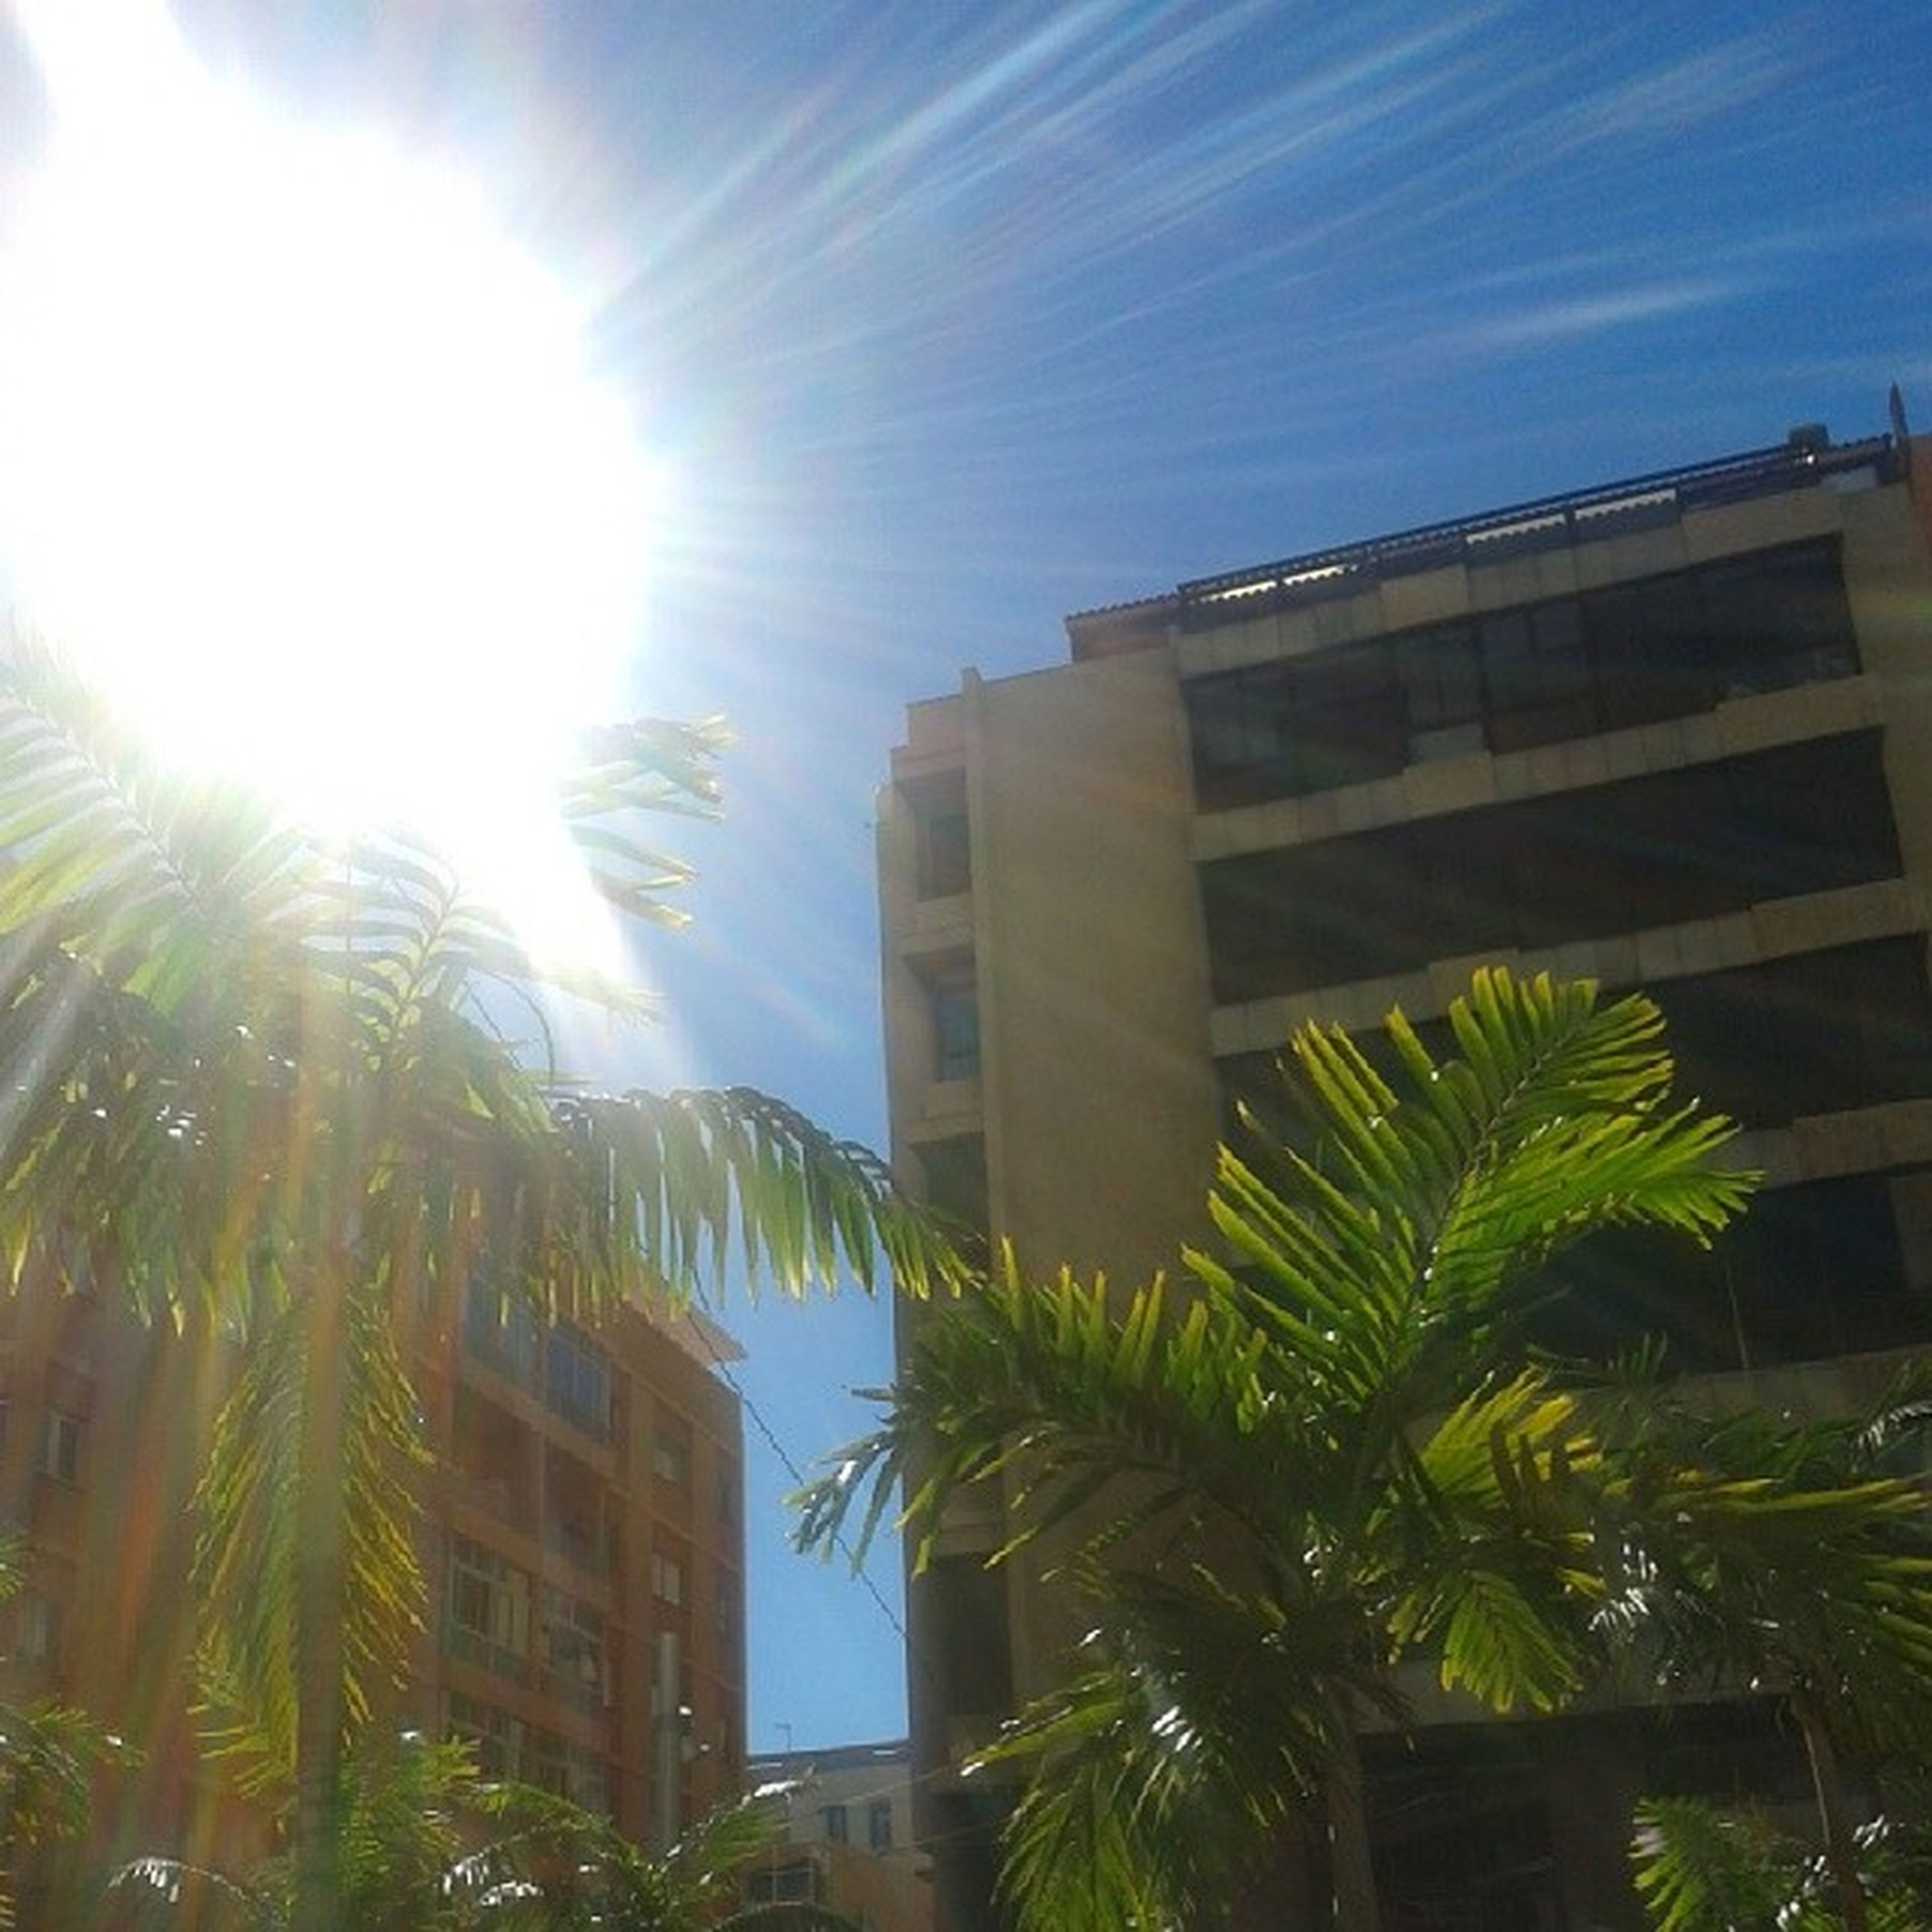 building exterior, architecture, sun, built structure, sunbeam, low angle view, sunlight, lens flare, tree, palm tree, sunny, sky, building, bright, growth, city, blue, day, residential building, house